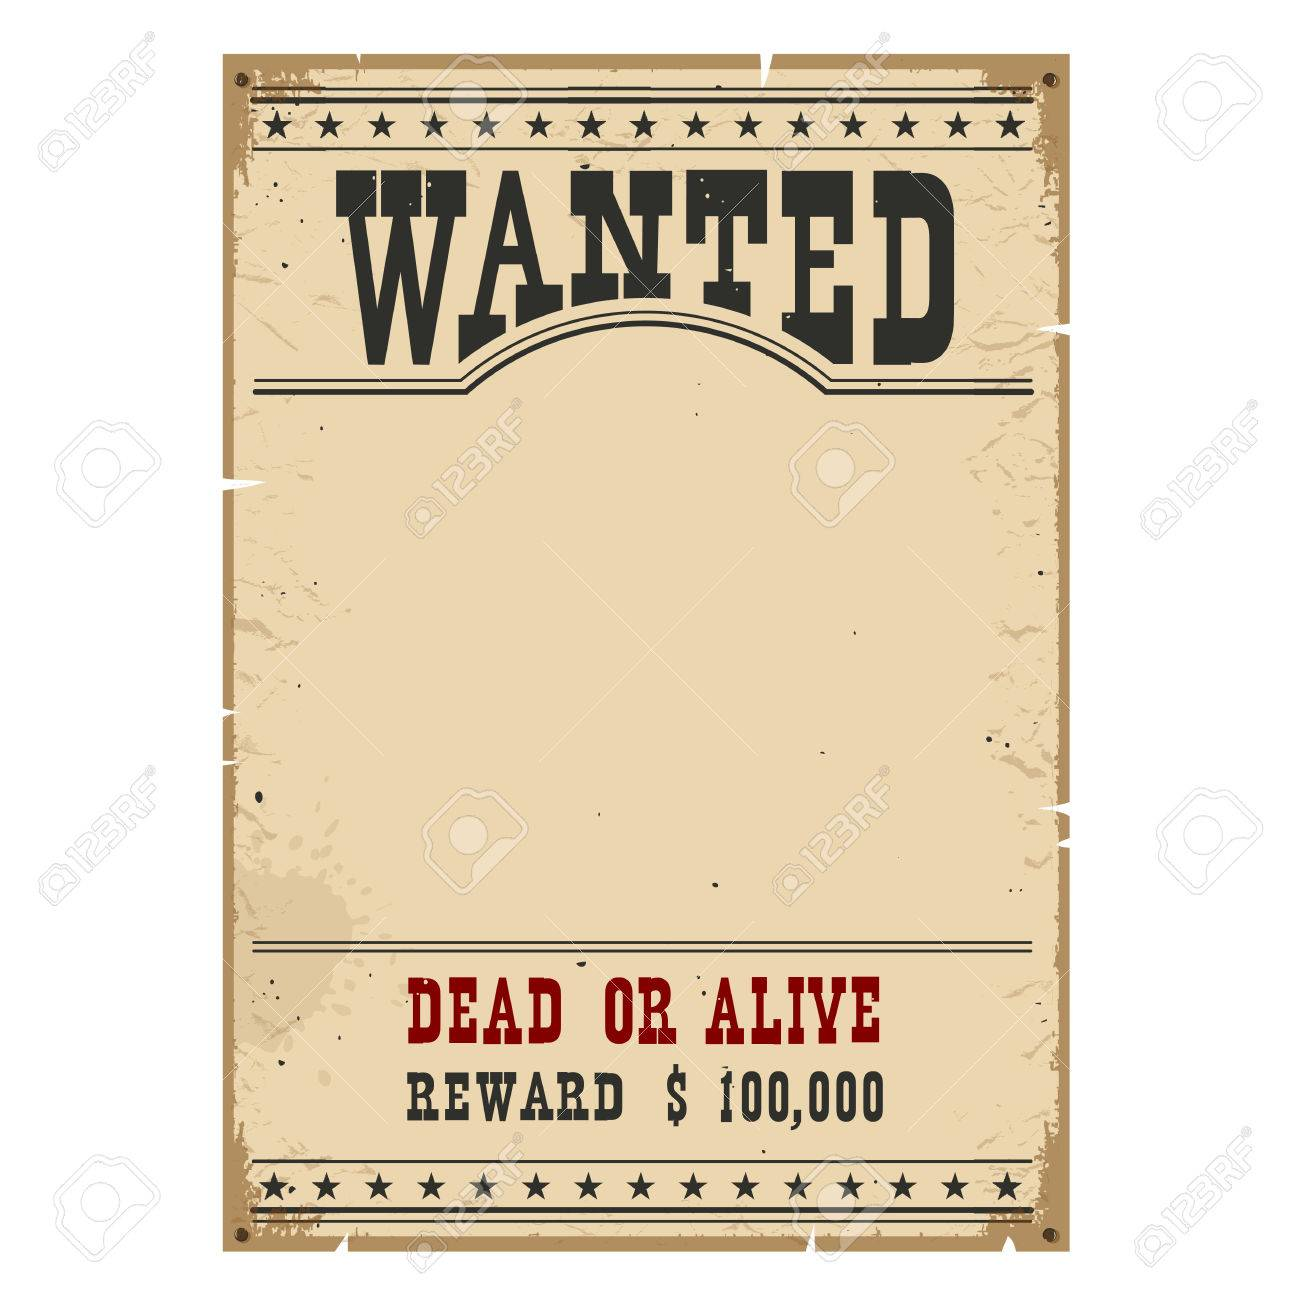 Wanted poster on wood wall texture for portrait.Western vintage paper - 56451049